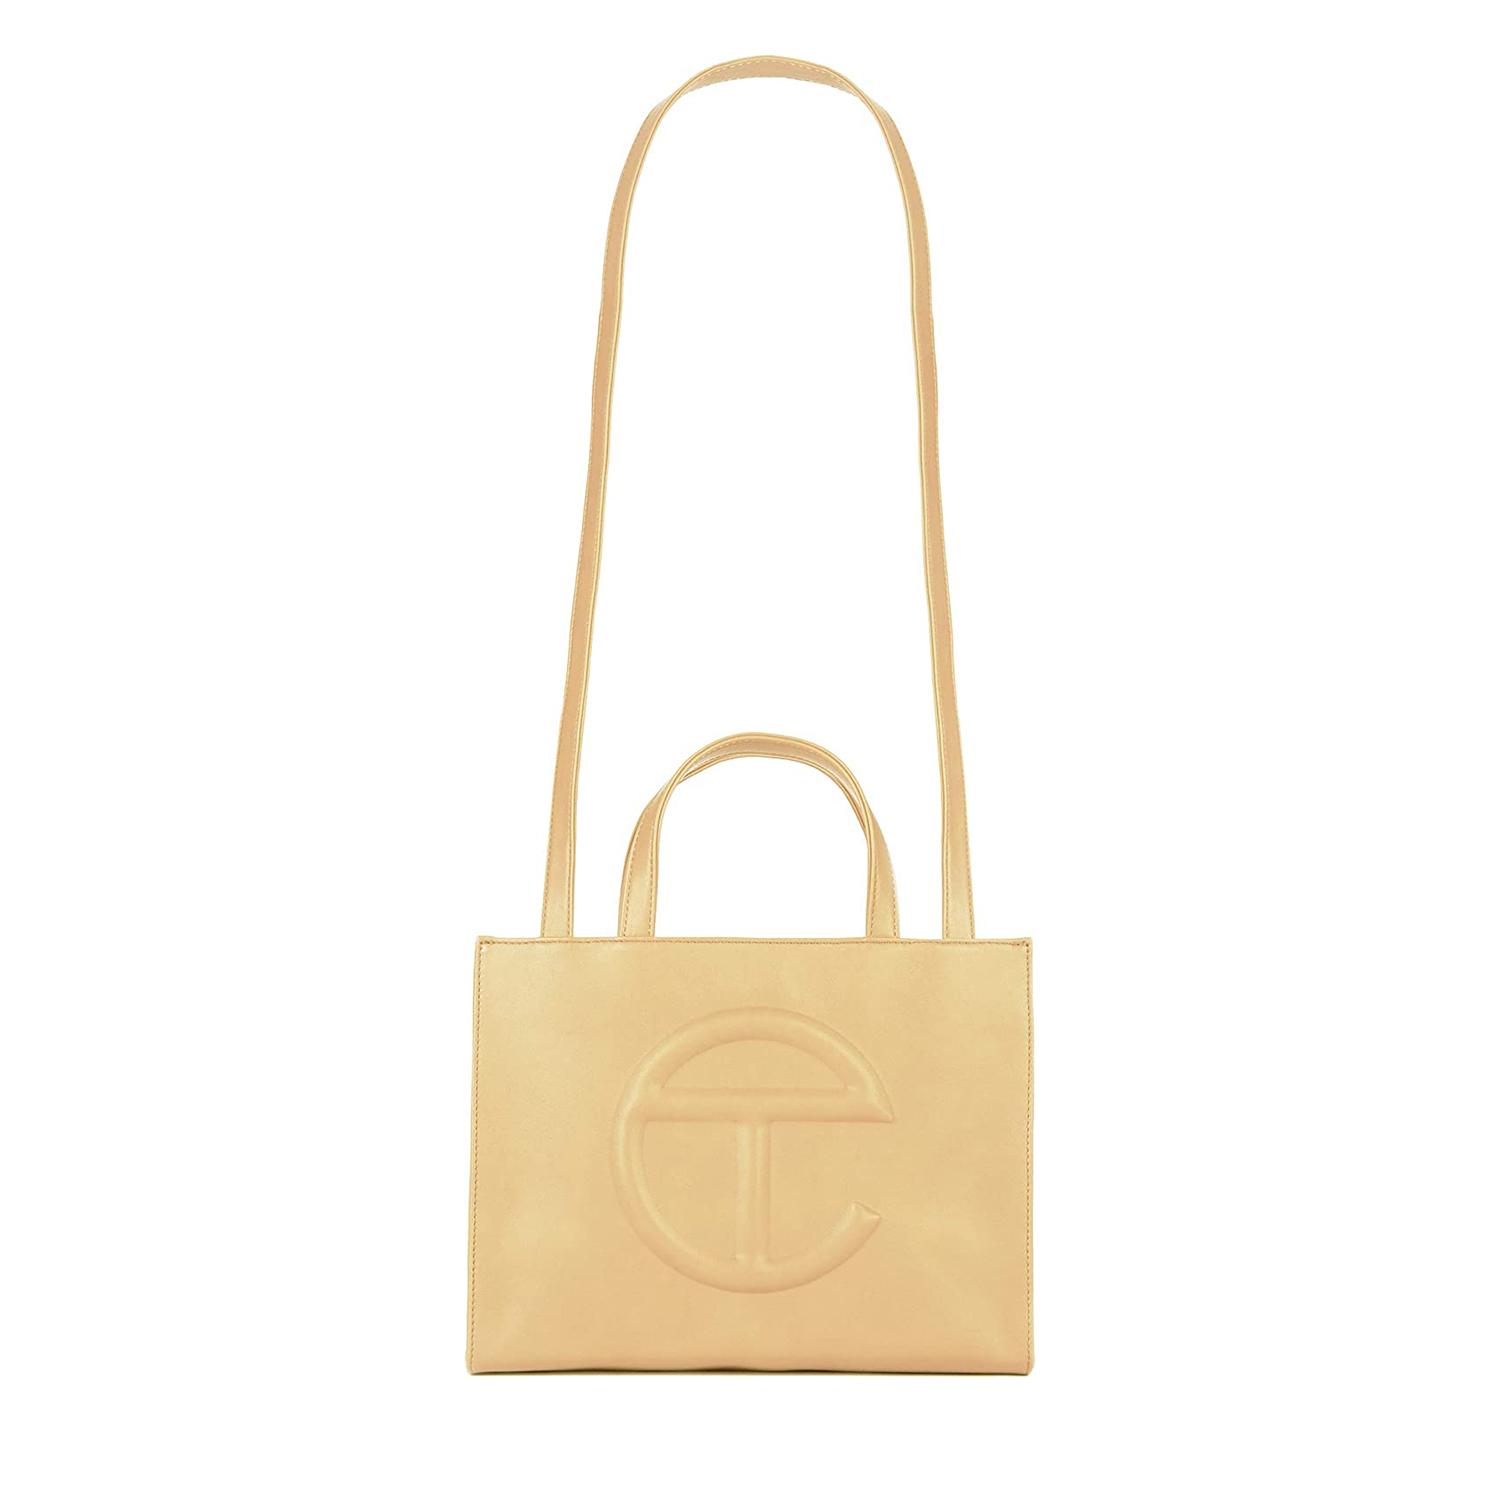 TELFAR, Medium Shopping Bag